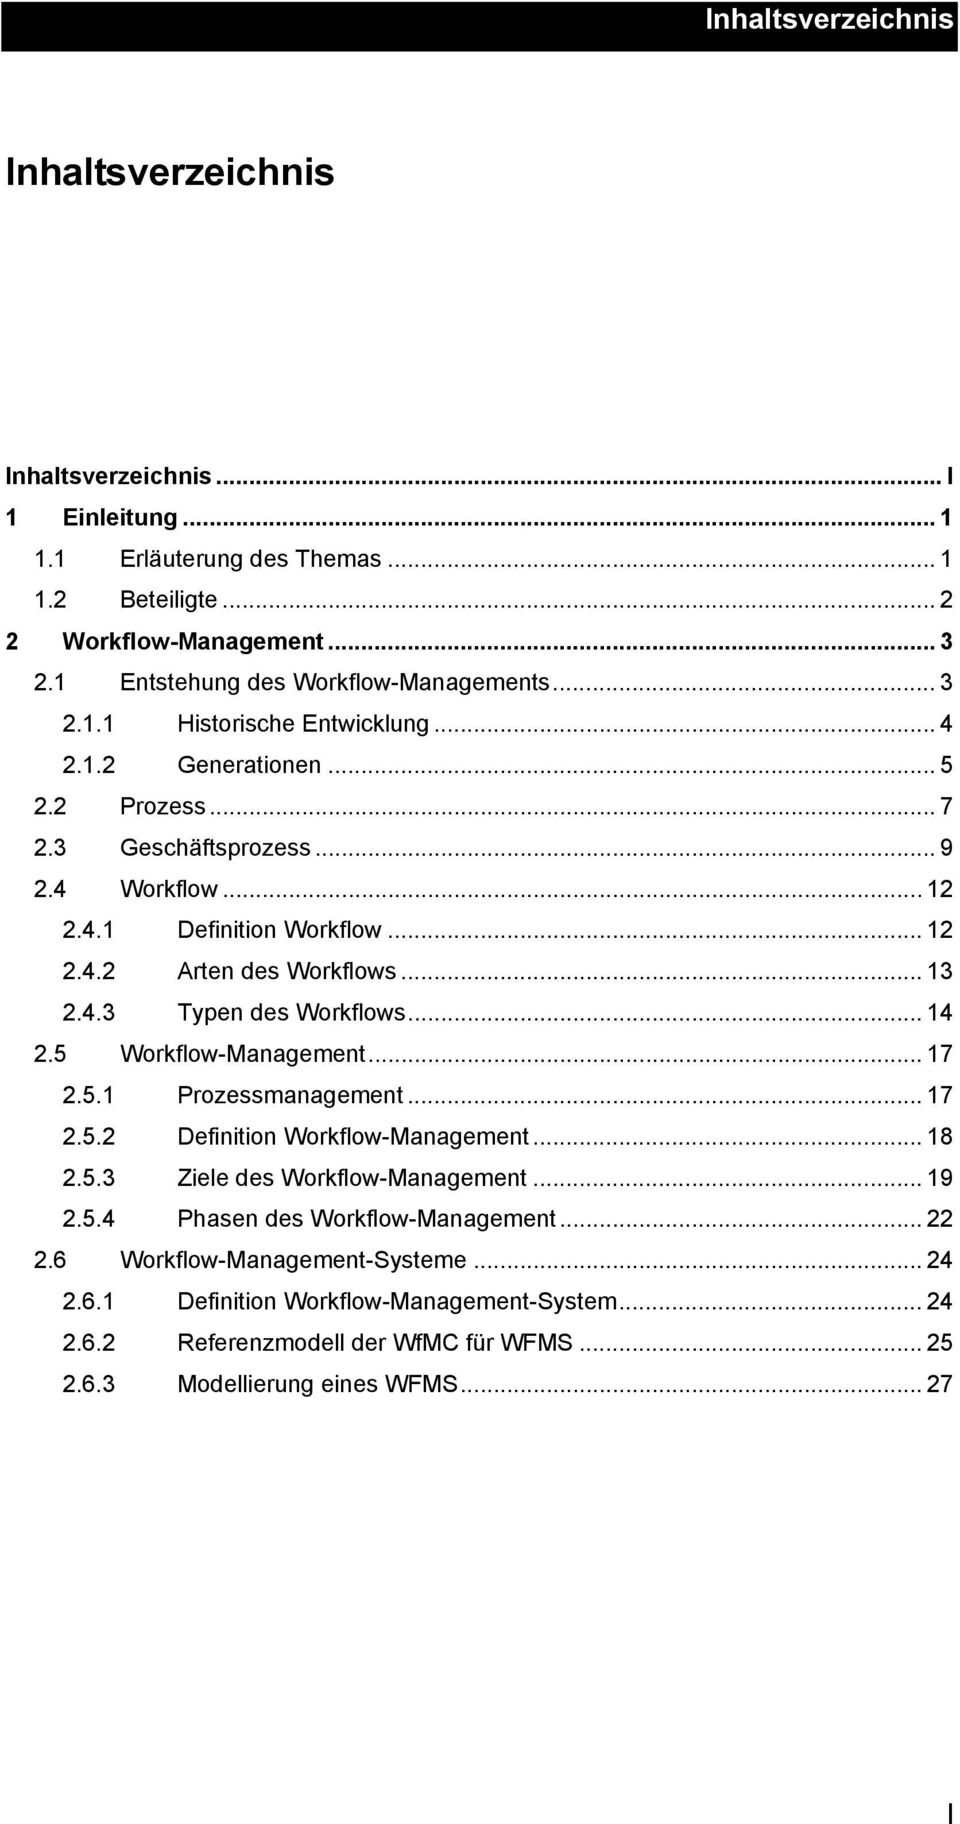 .. 12 2.4.2 Arten des Workflows... 13 2.4.3 Typen des Workflows... 14 2.5 Workflow-Management... 17 2.5.1 Prozessmanagement... 17 2.5.2 Definition Workflow-Management... 18 2.5.3 Ziele des Workflow-Management.